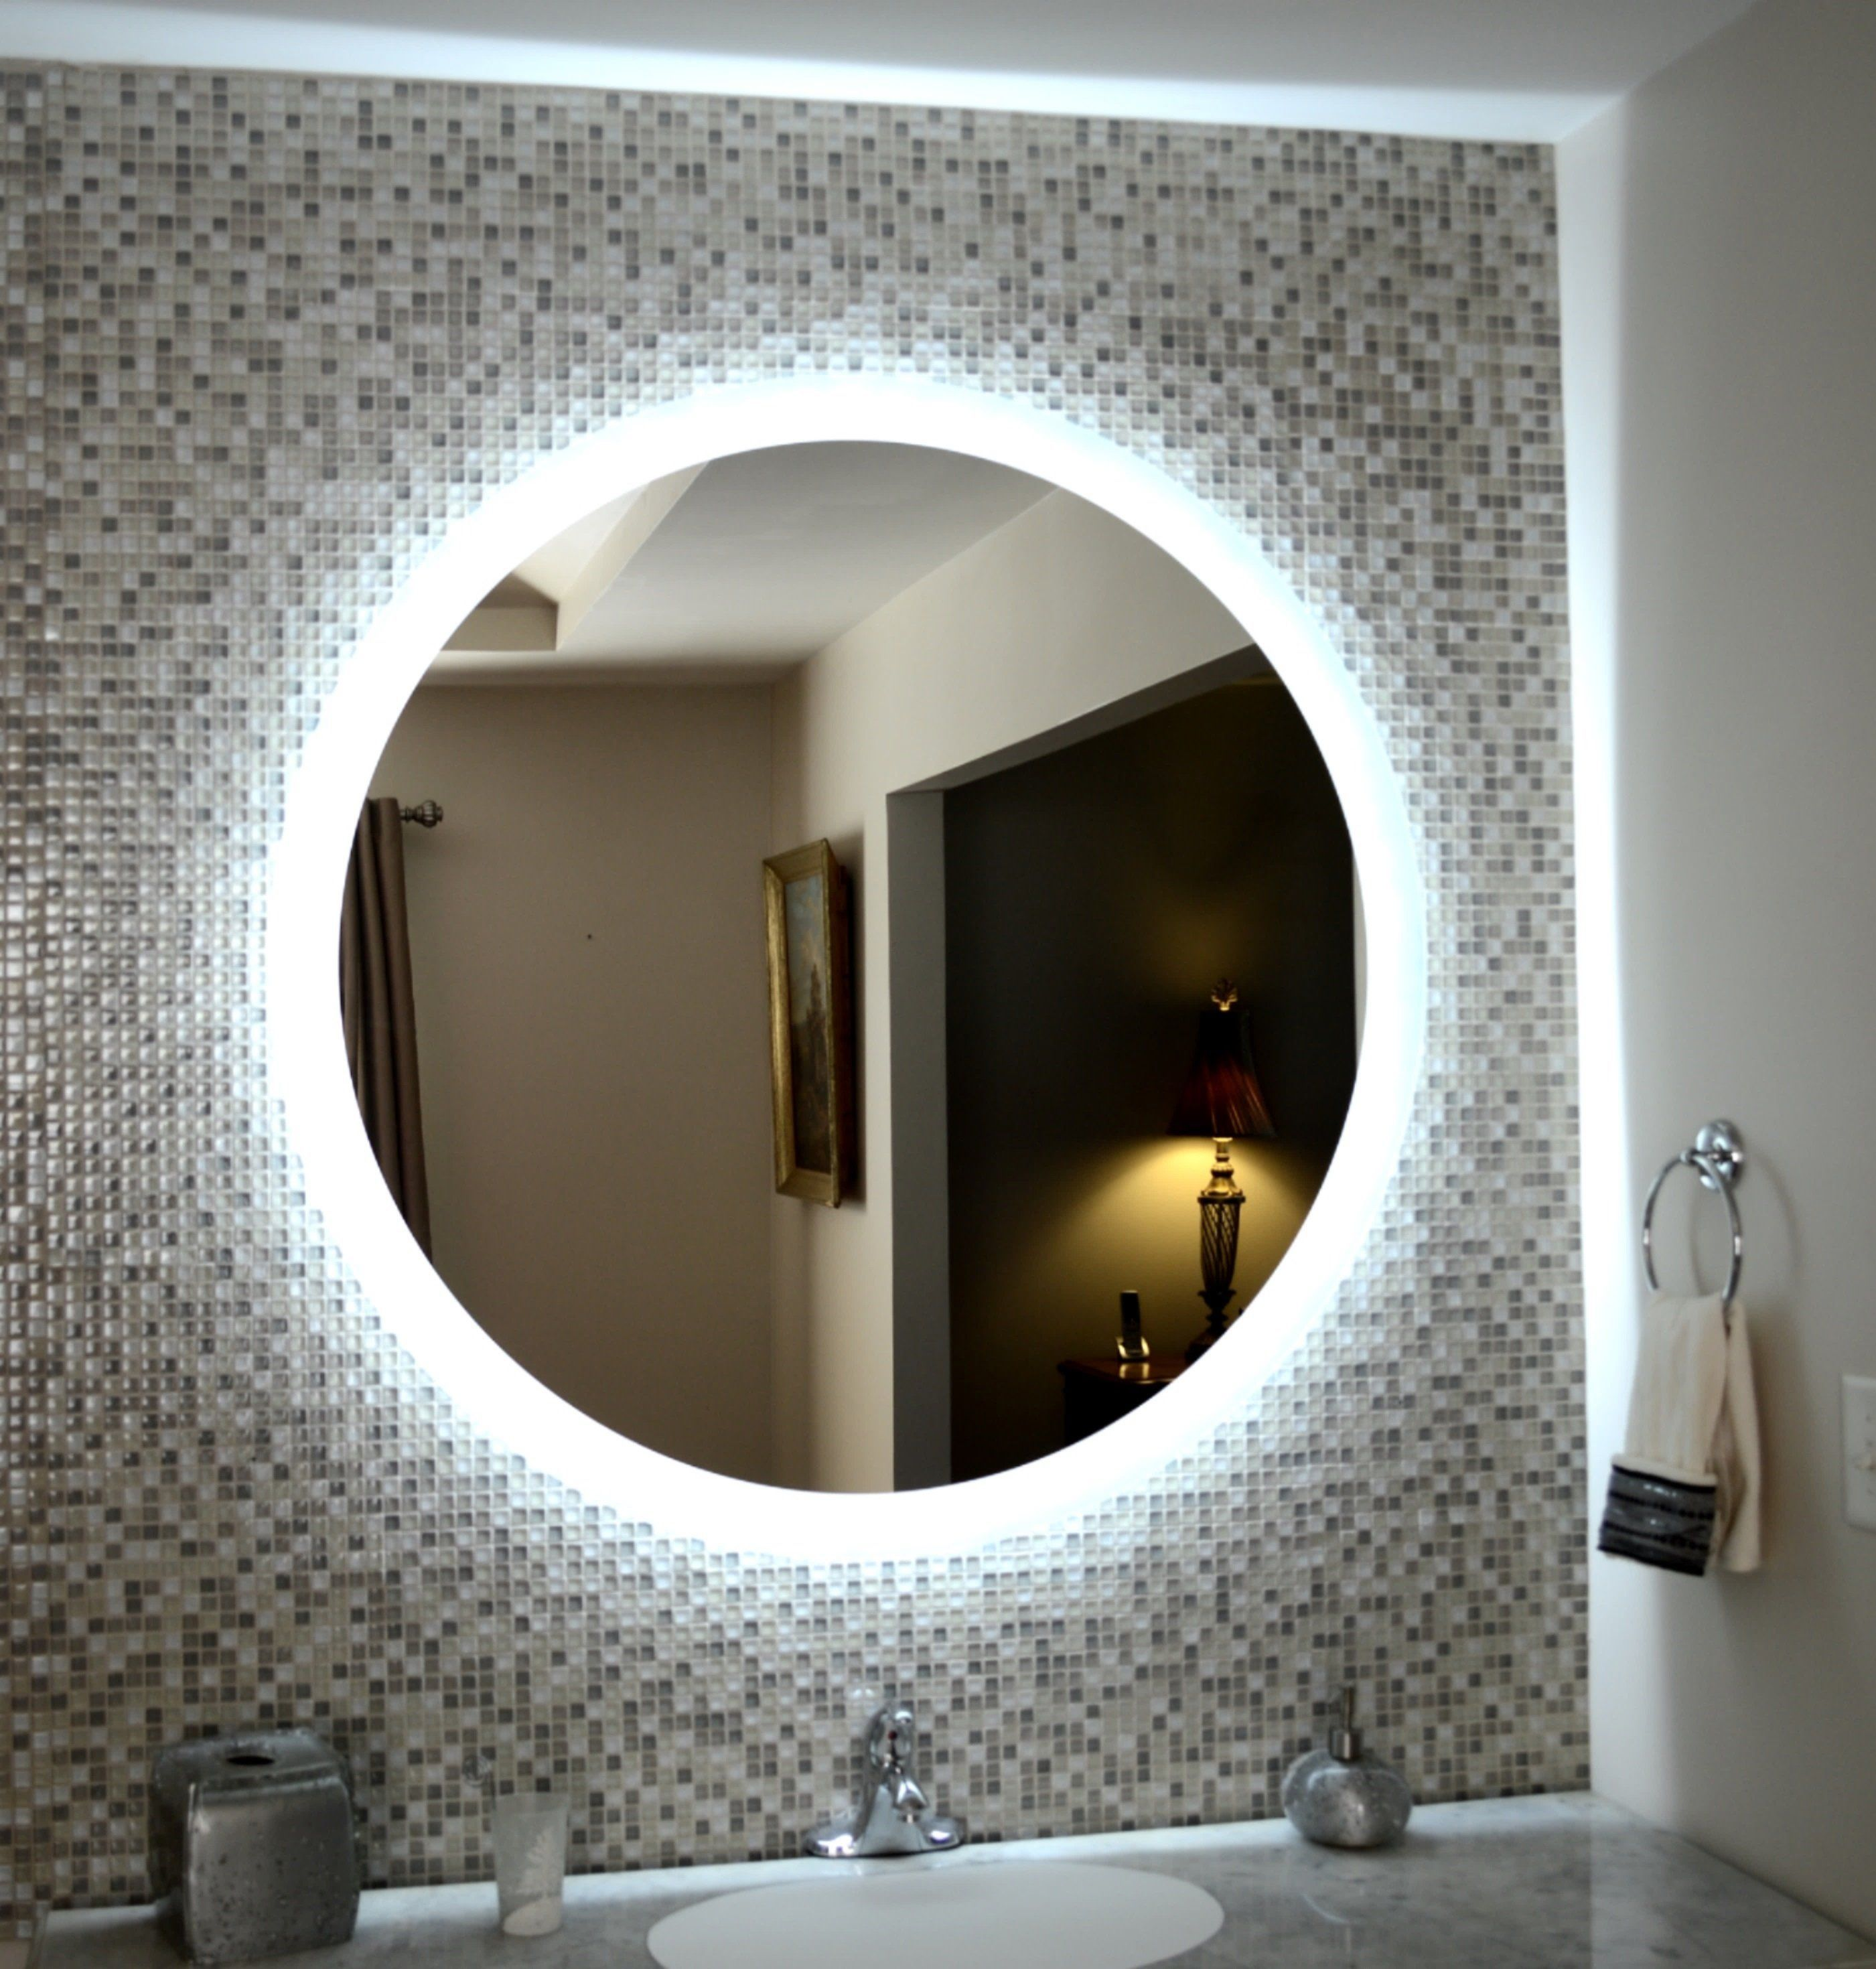 Side Lighted Led Bathroom Vanity Mirror 48 Wide X 48 Tall Round Wall Mounted Miroir Salle De Bain Salle De Bains Moderne Salle De Bain Design